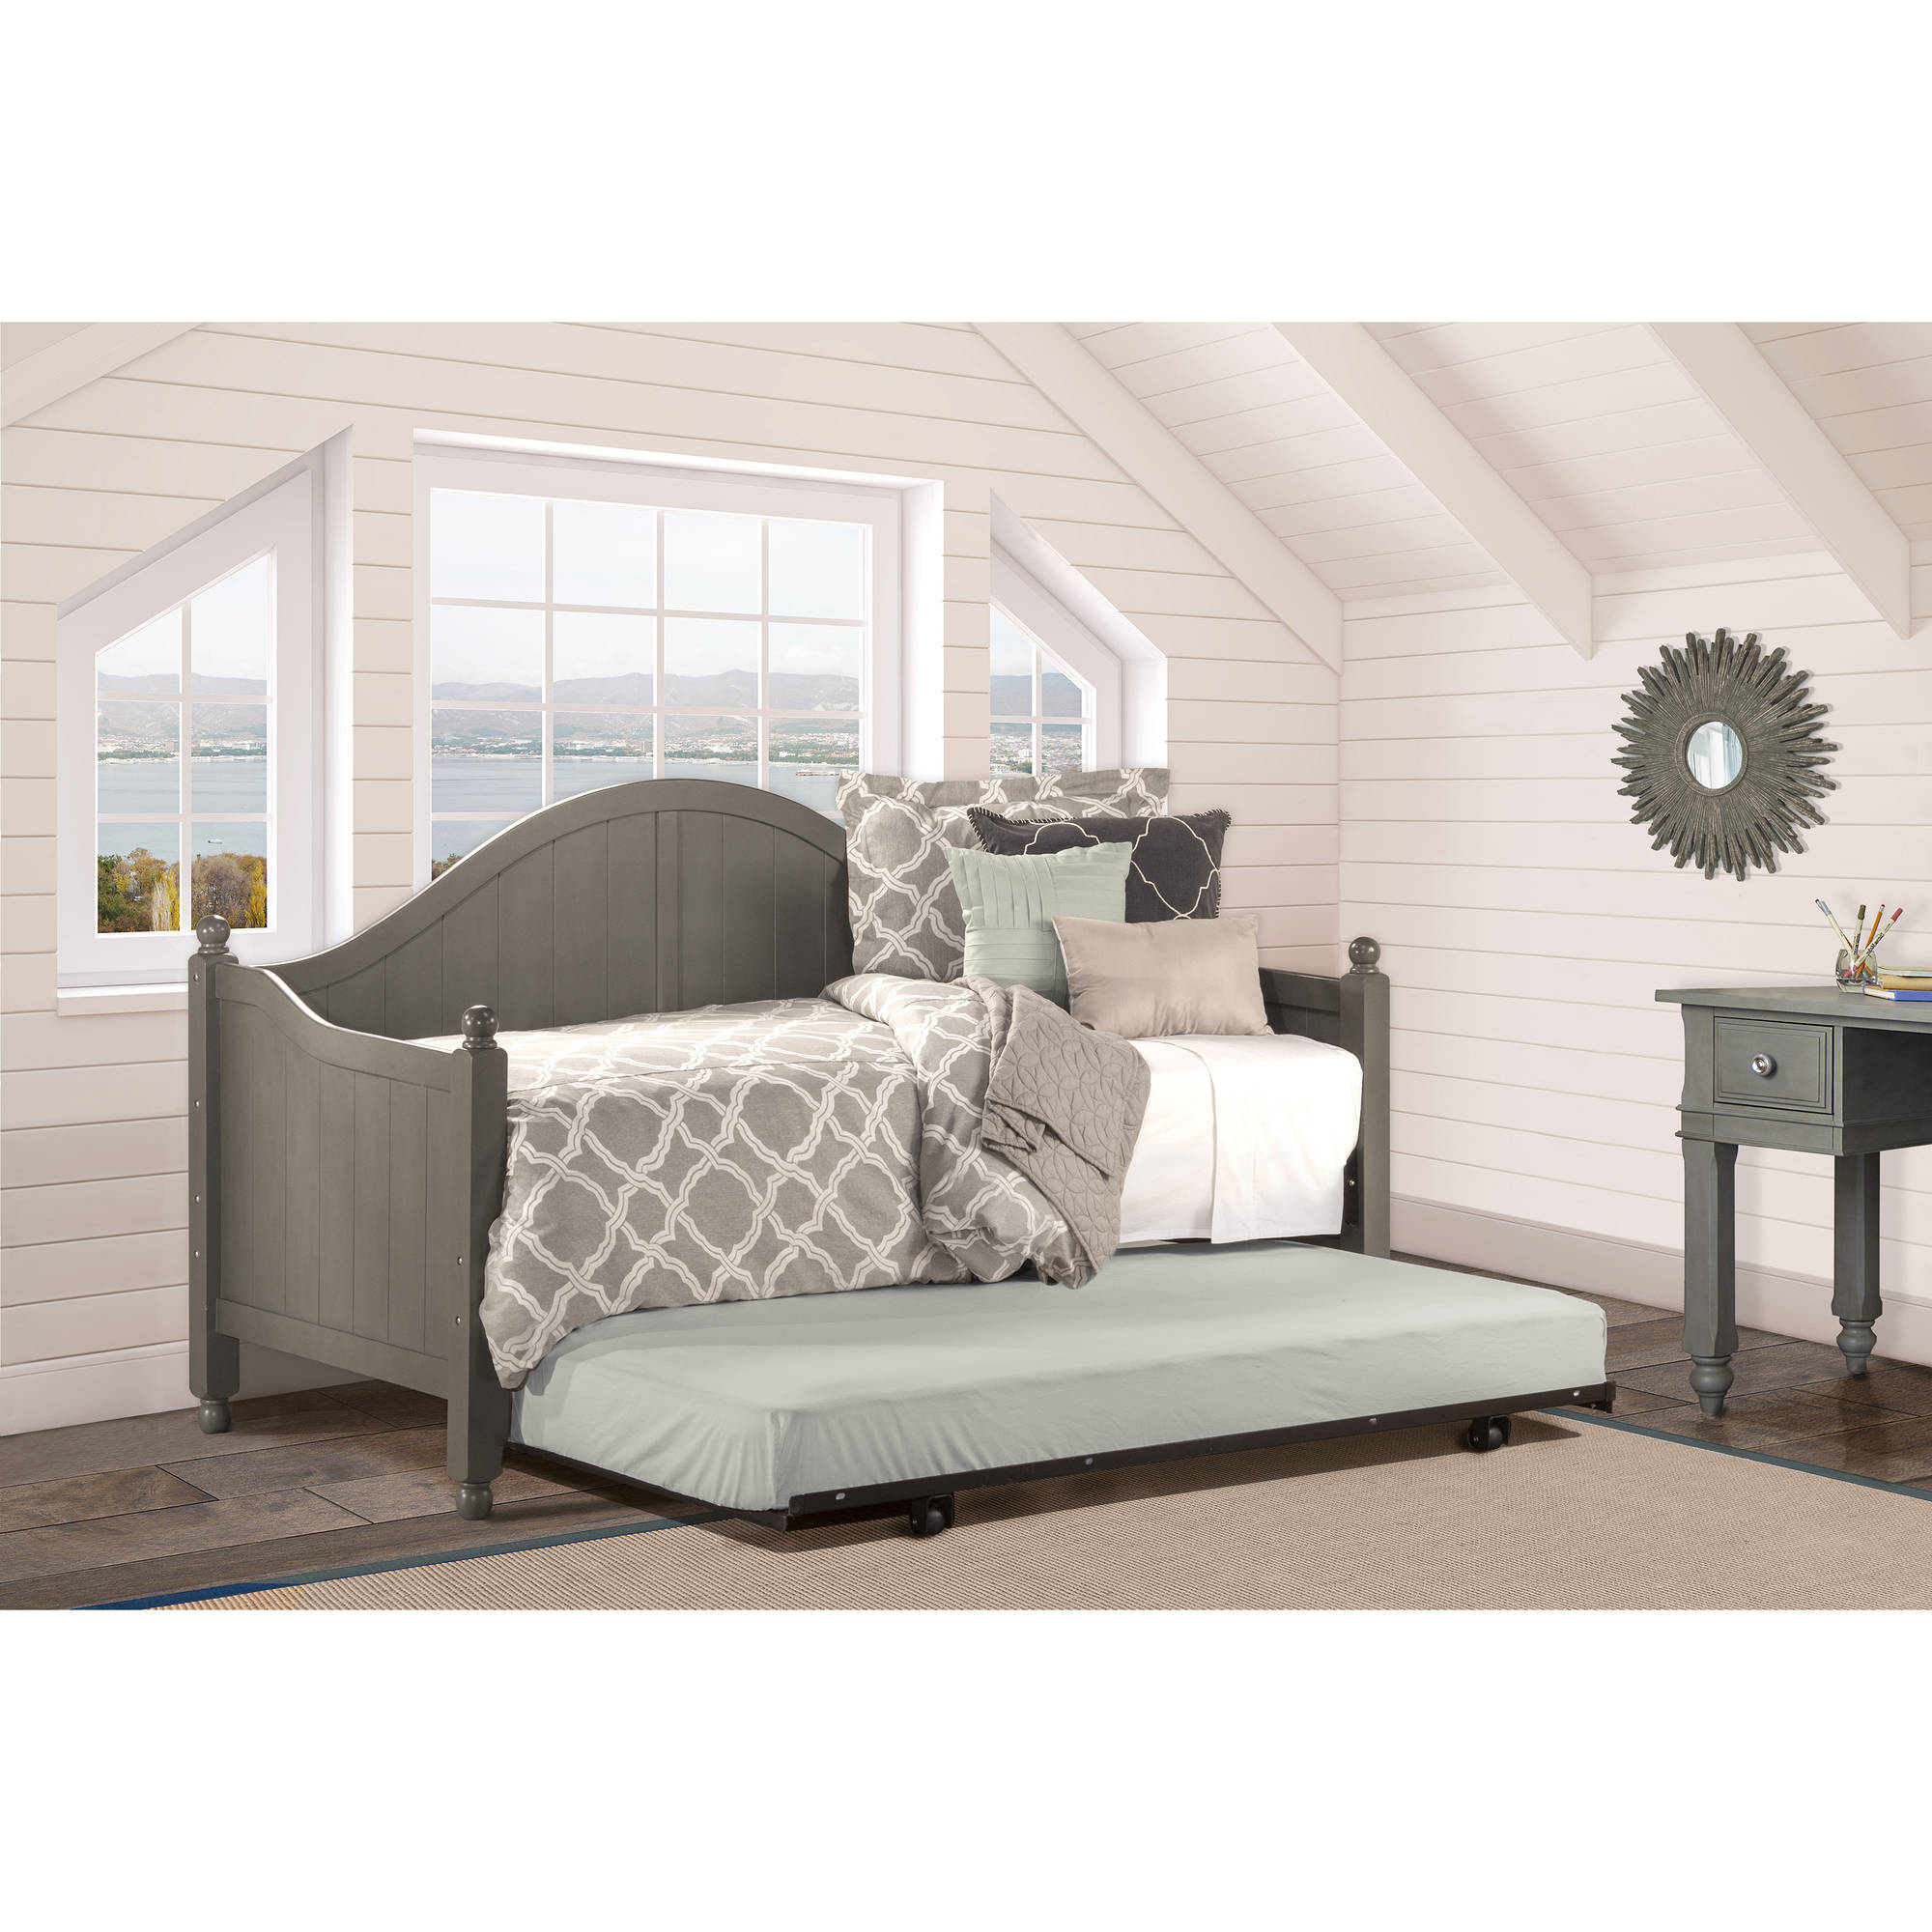 Hillsdale Furniture Augusta Day Bed with Trundle, Stone by Hillsdale